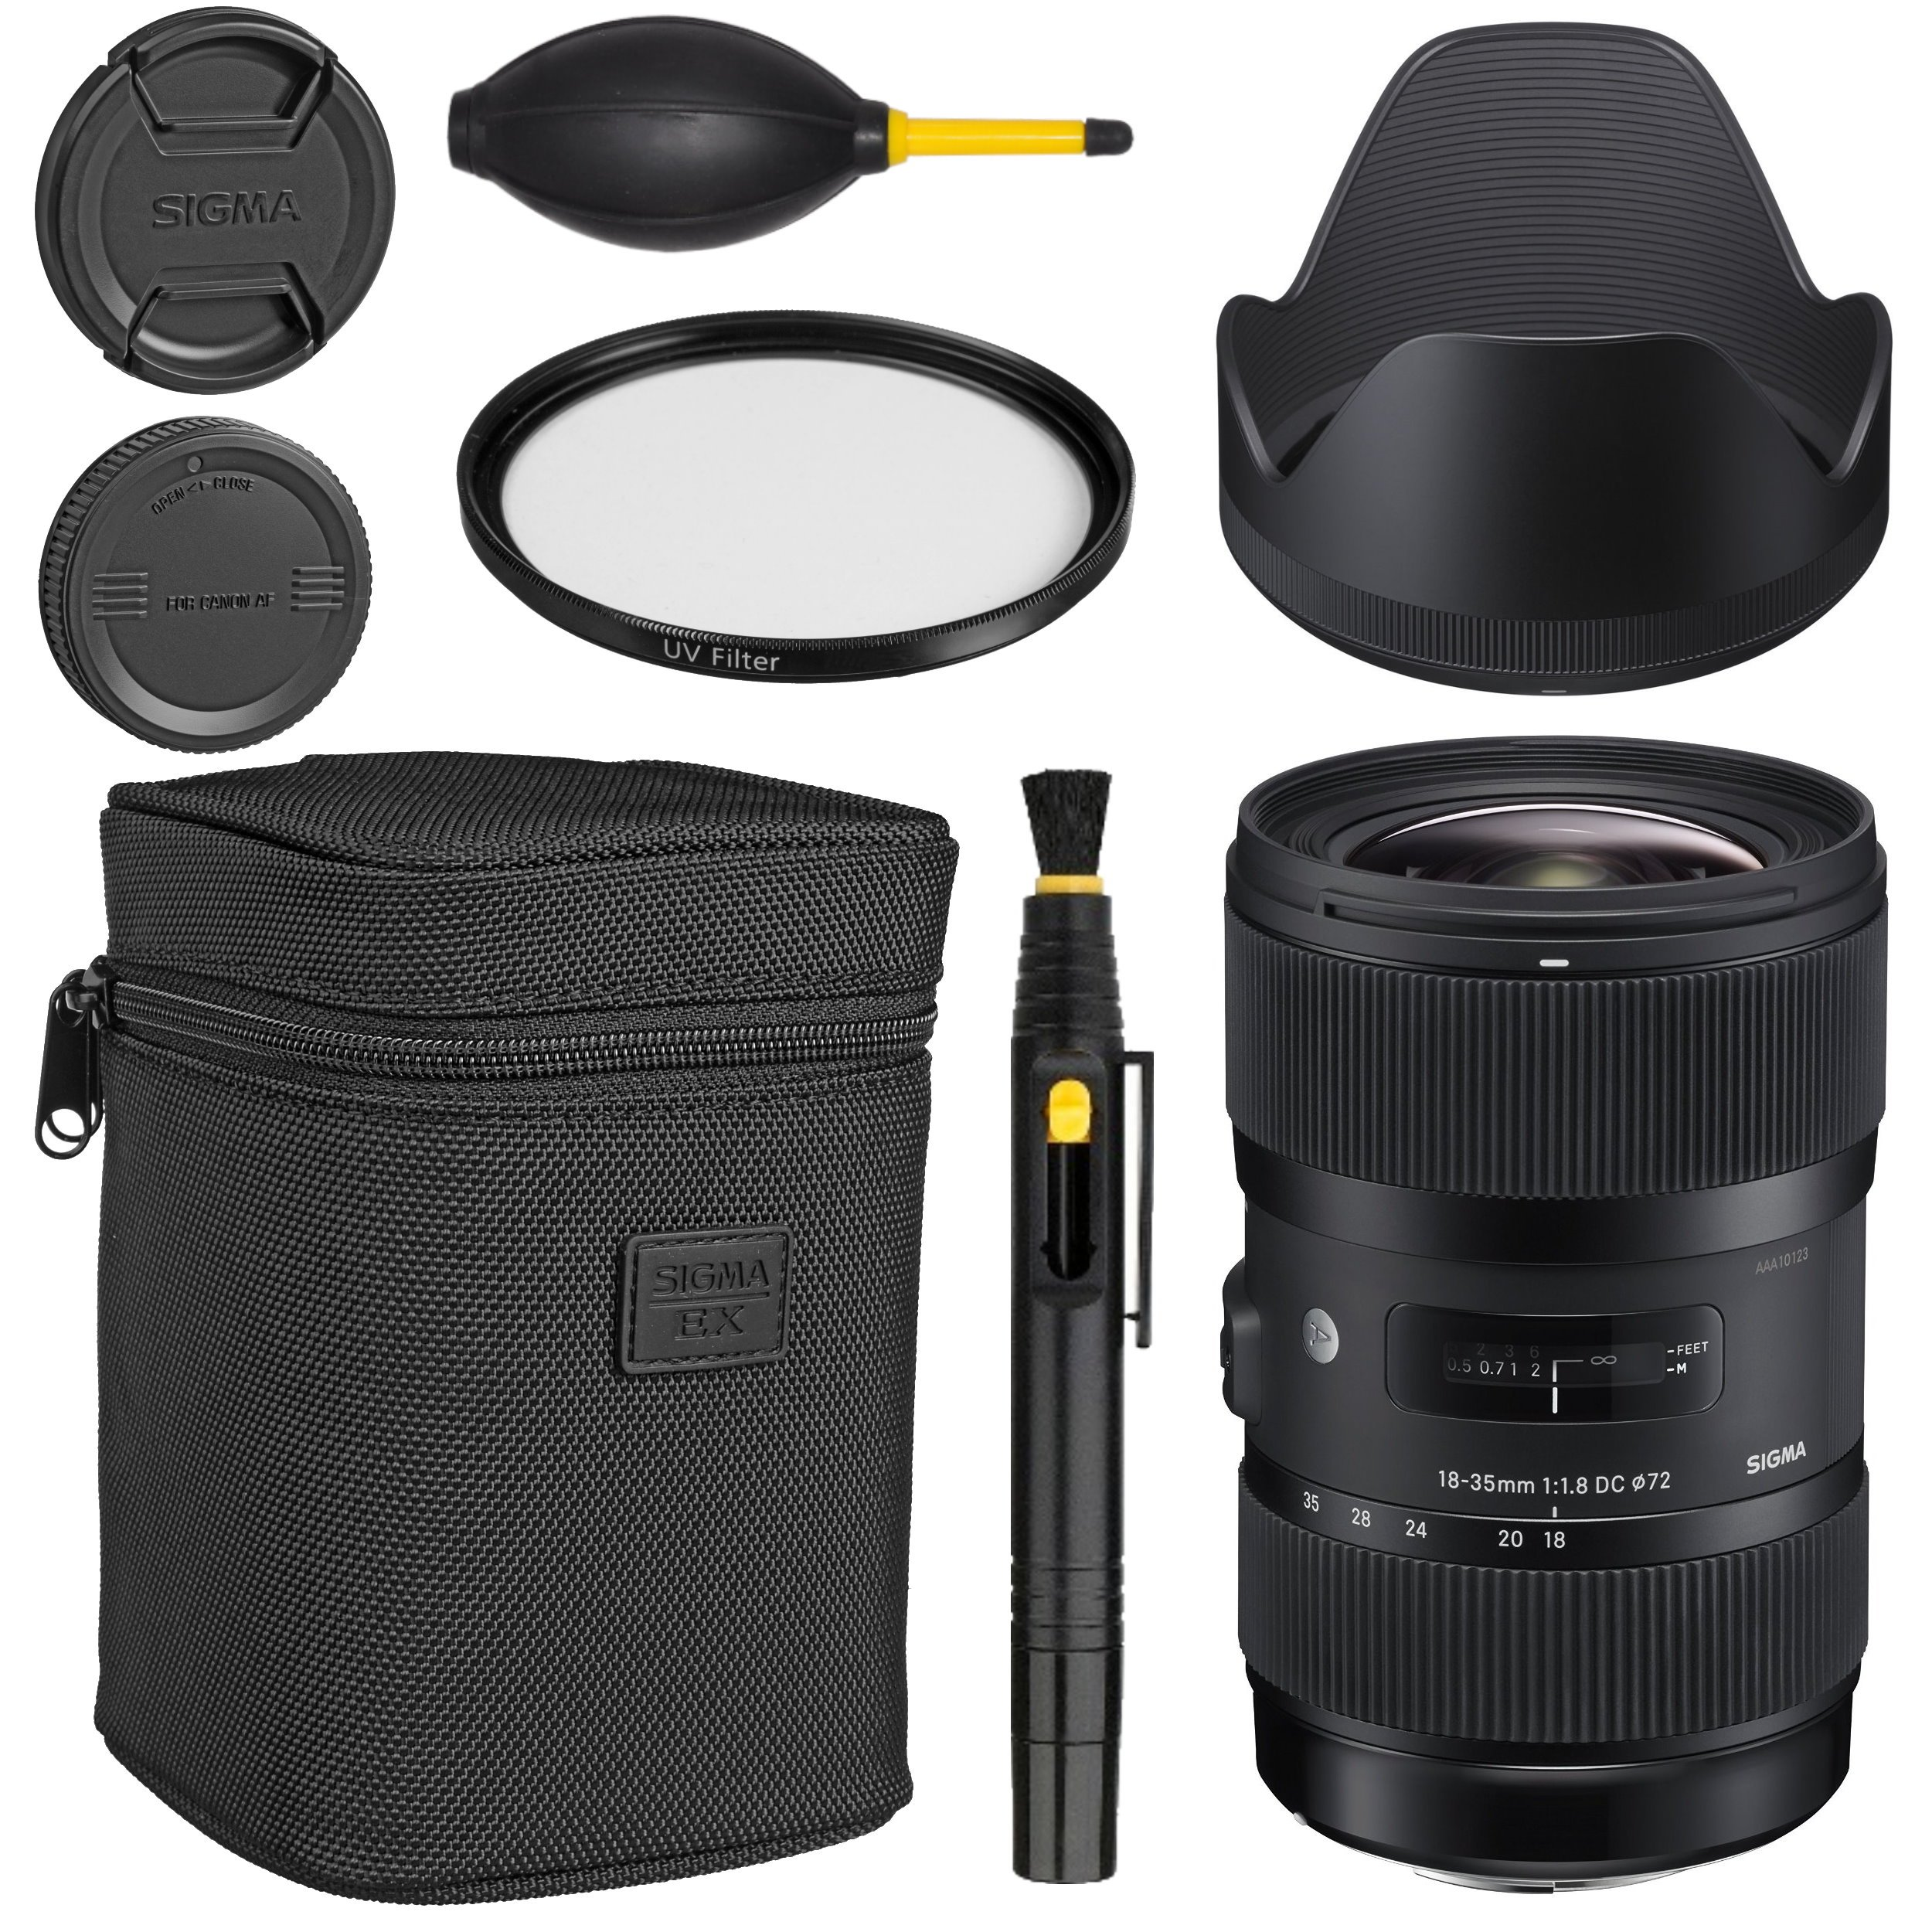 Sigma 18-35mm f/1.8 DC HSM Art Lens for Canon -Black + Essential Bundle Kit + 1 Year Warranty - International Version (No Warranty) by AOM